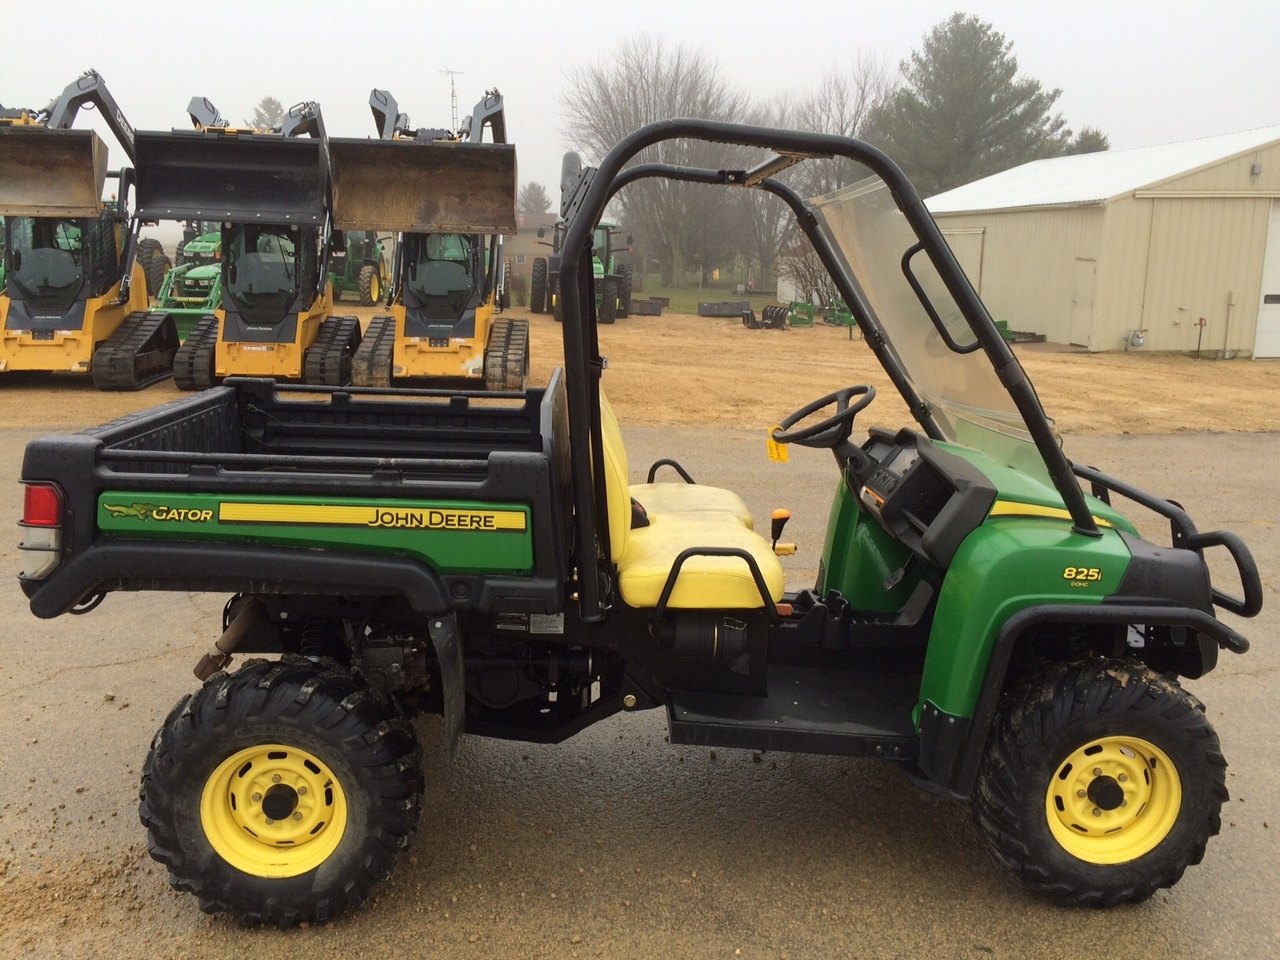 john deere xuv 825i green atvs gators for sale 49085. Black Bedroom Furniture Sets. Home Design Ideas